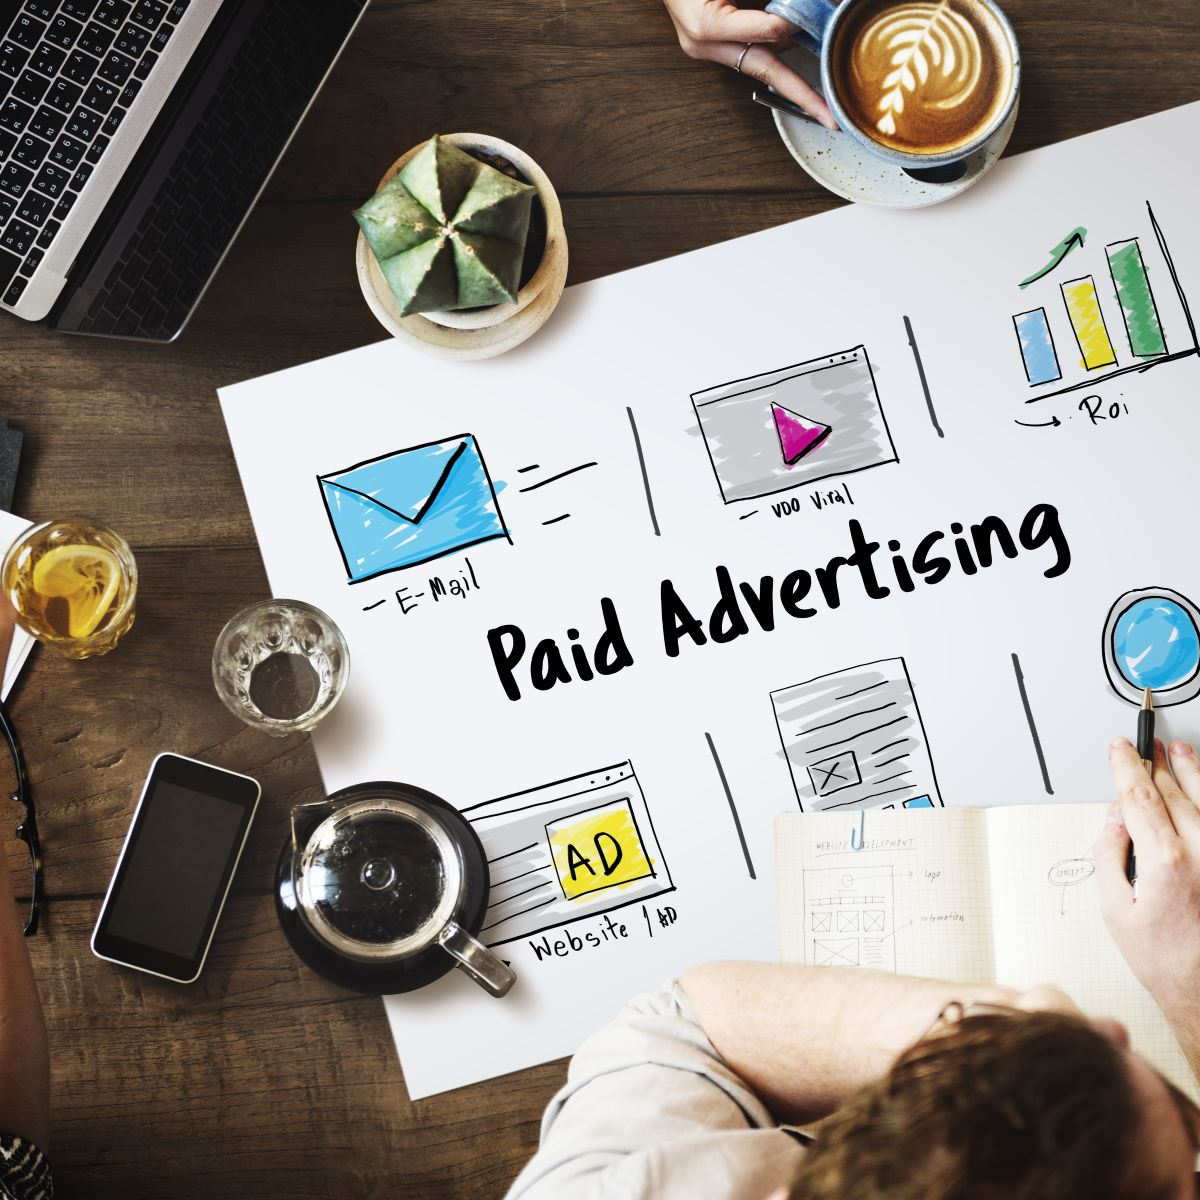 paid advertising concept